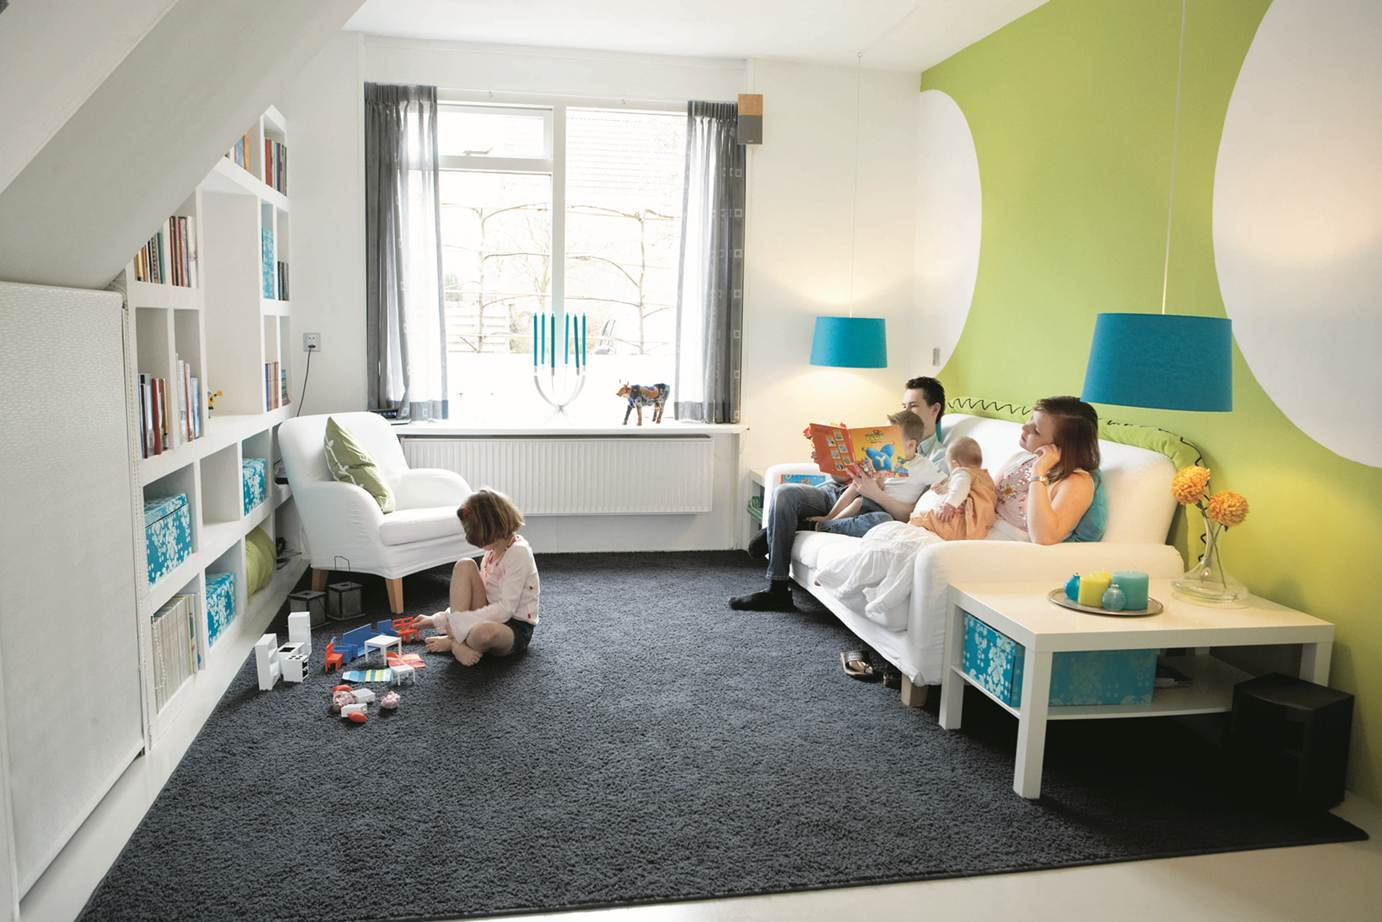 Image result for small living room kids area